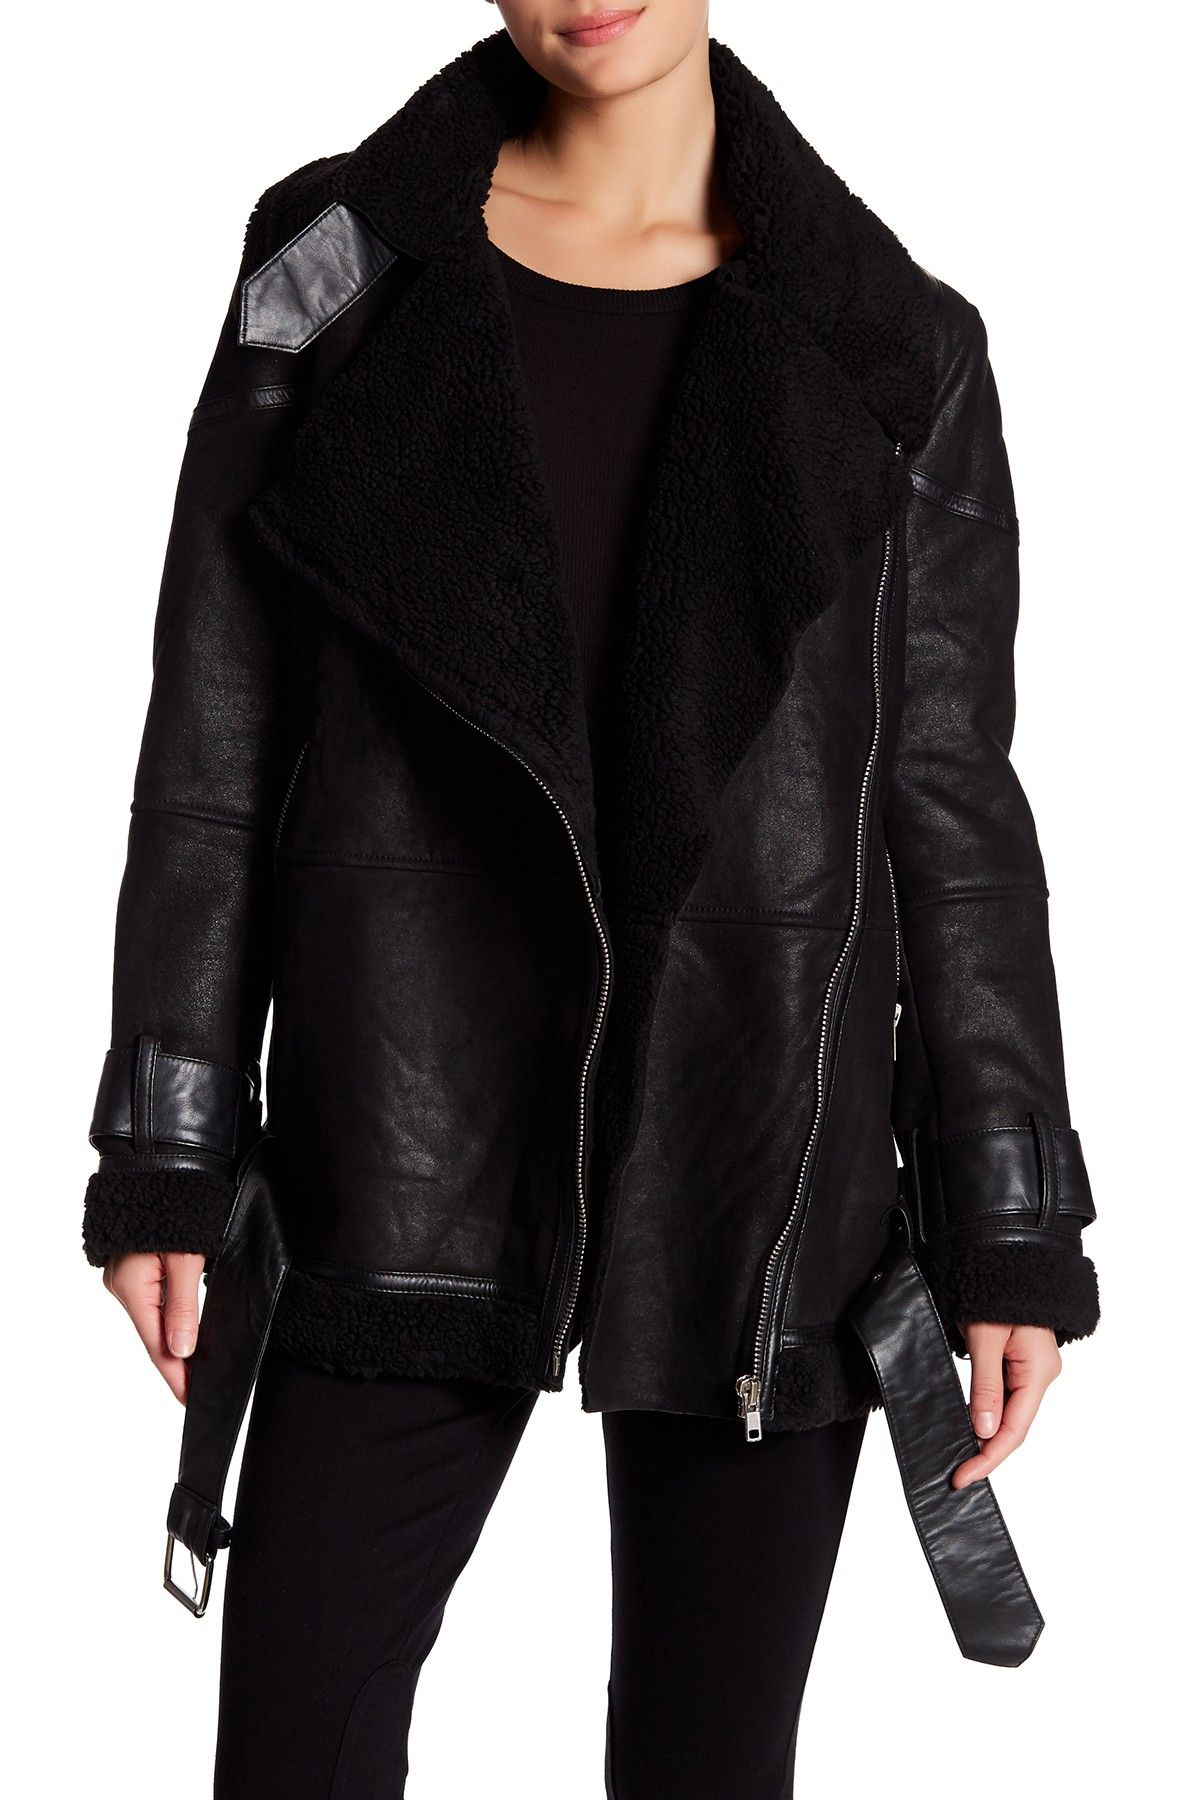 W118 by Walter Baker Bria Lamb Leather Faux Shearling